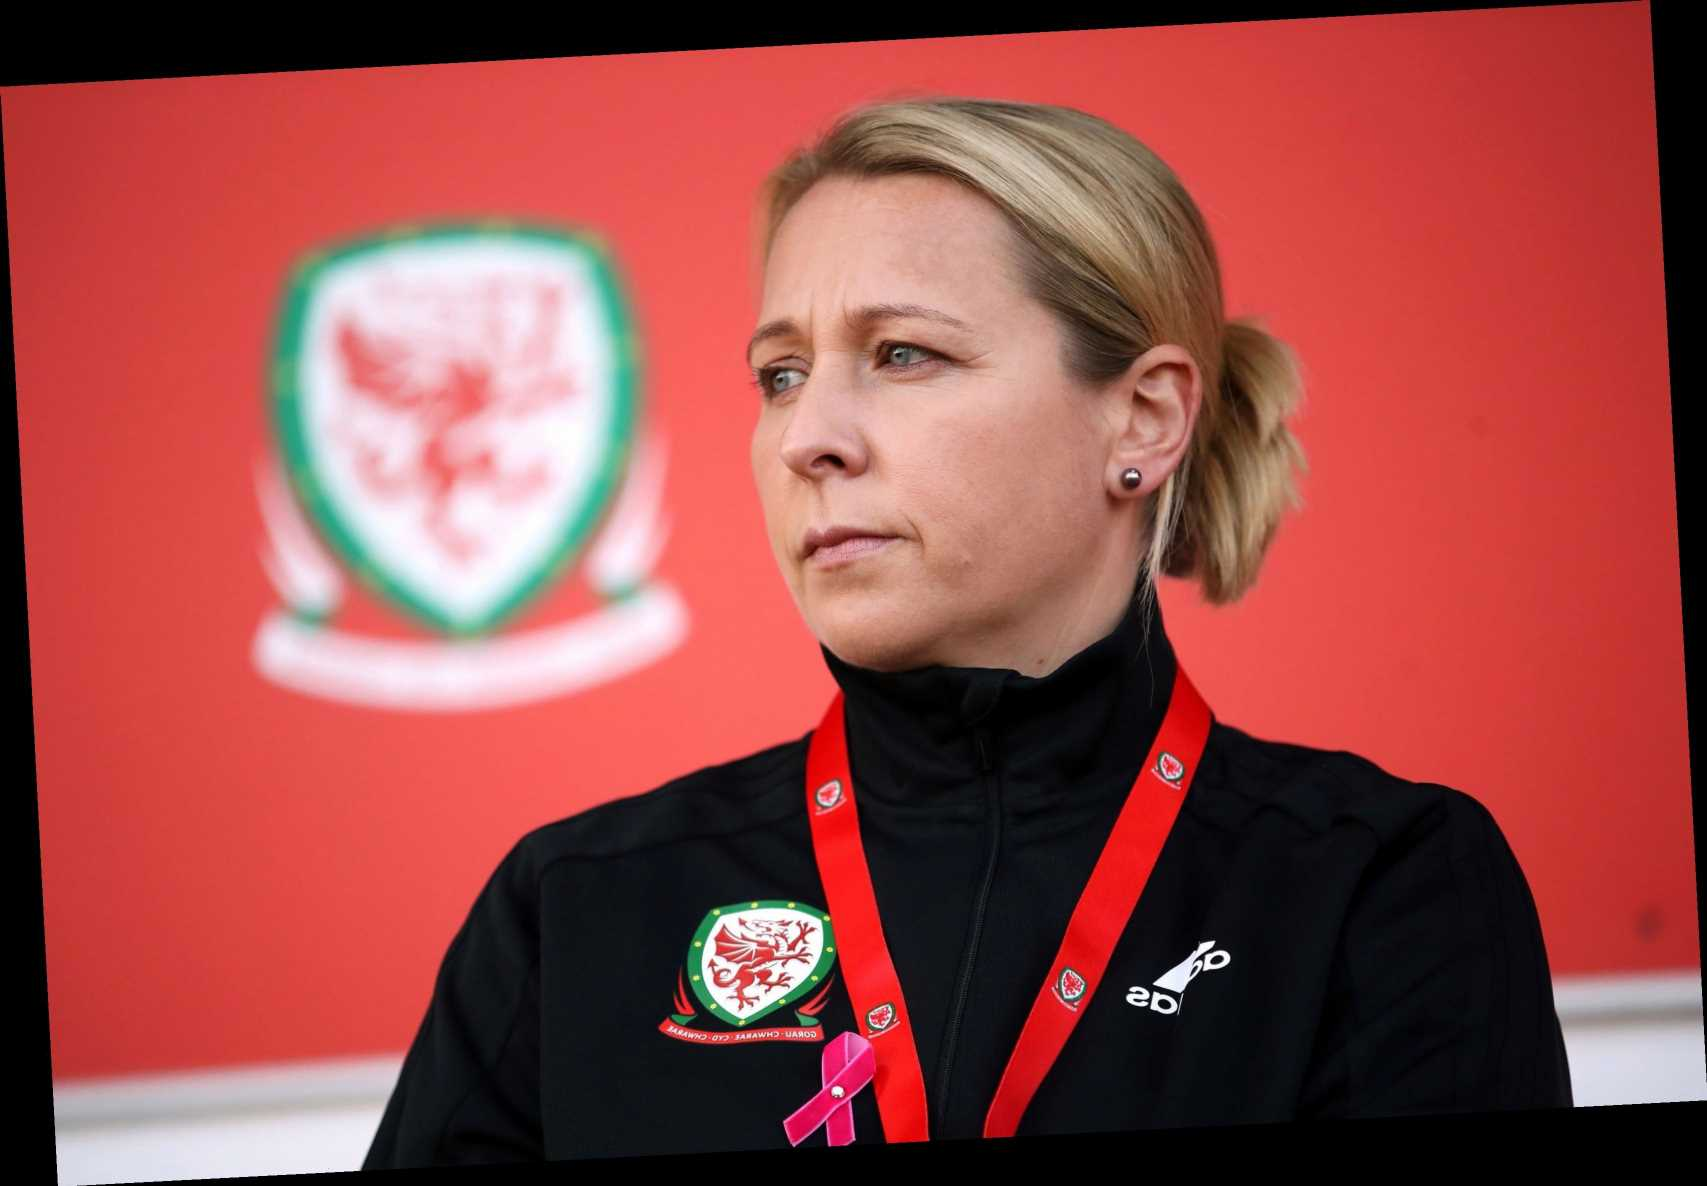 Wales Women's boss Jayne Ludlow leaves role by mutual consent after six years in charge